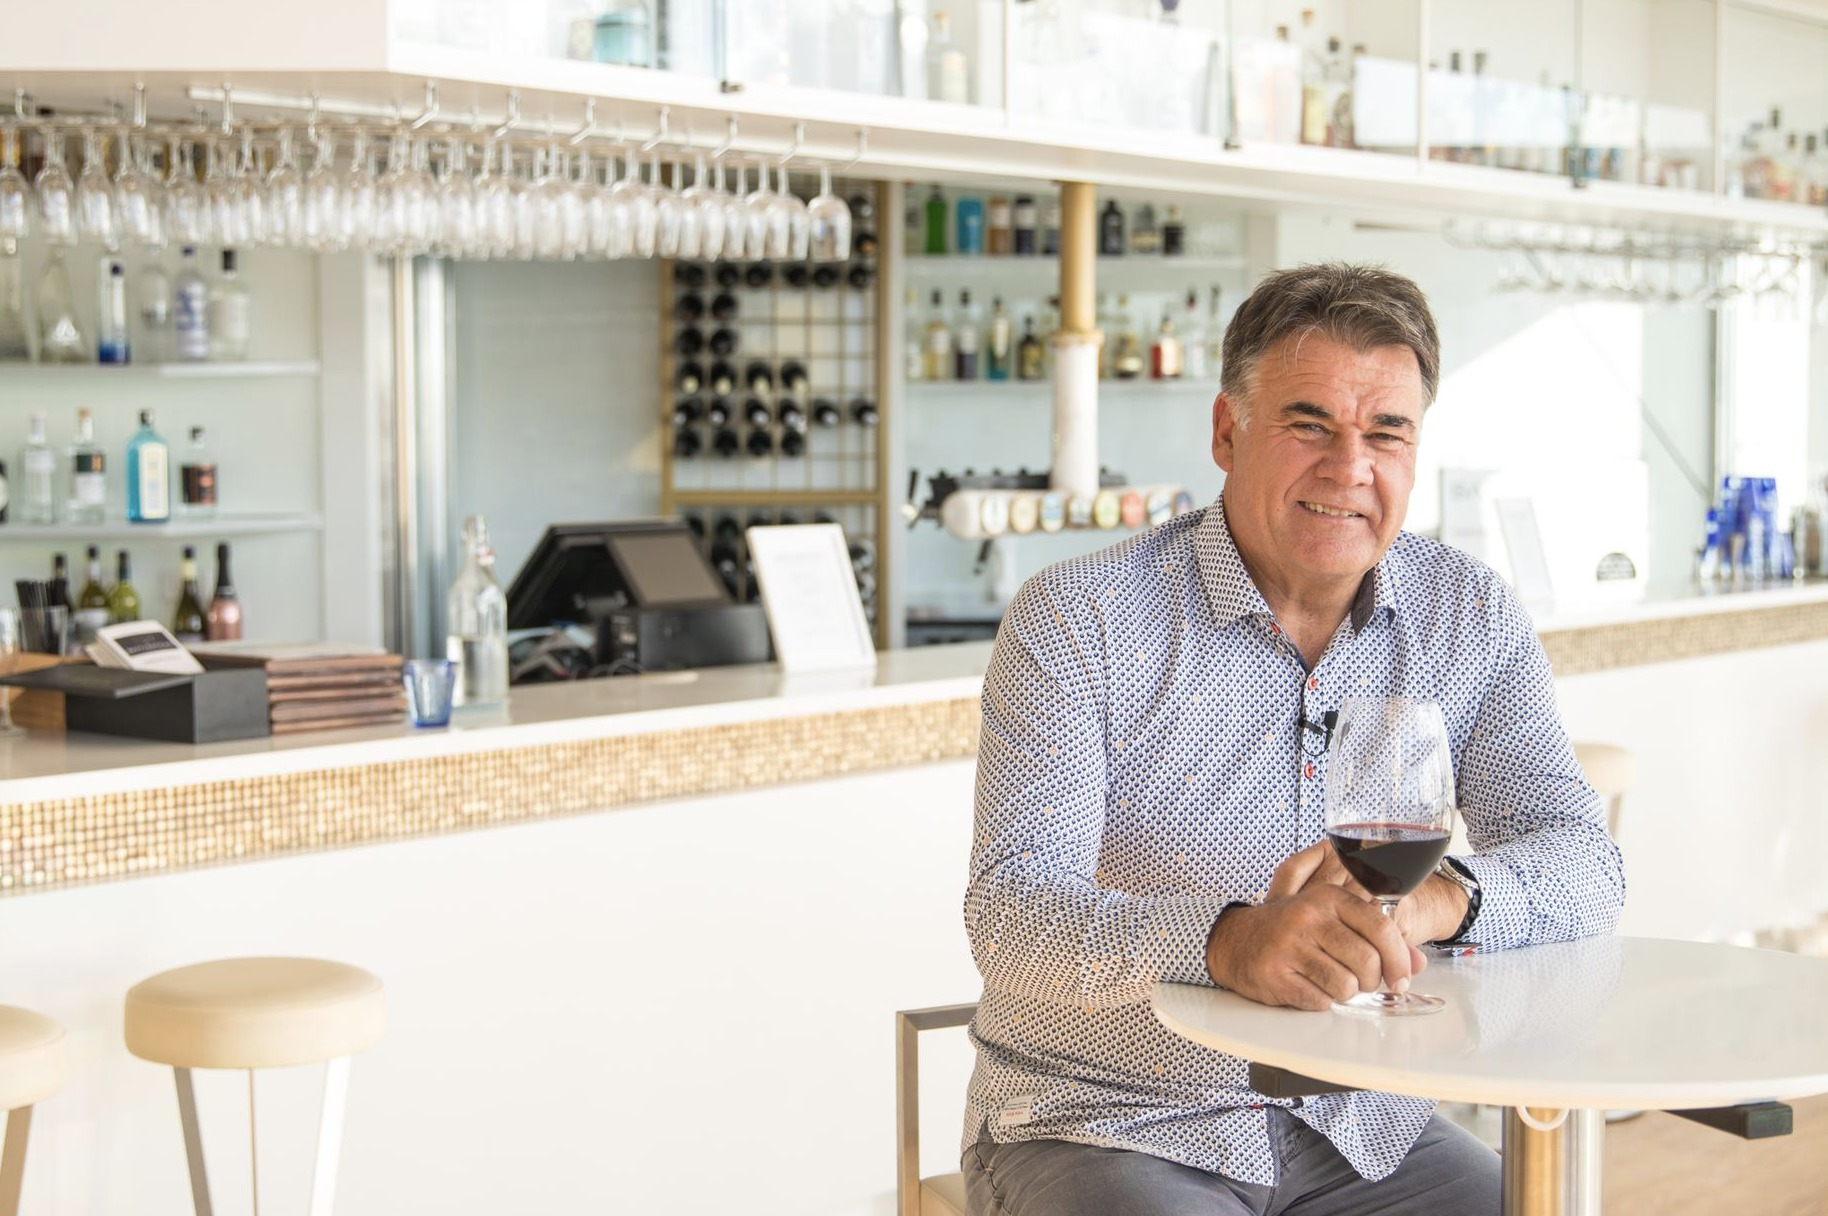 Neil Slater, Owner of Scratchley's talks to Long & Co Newcastle marketing firm